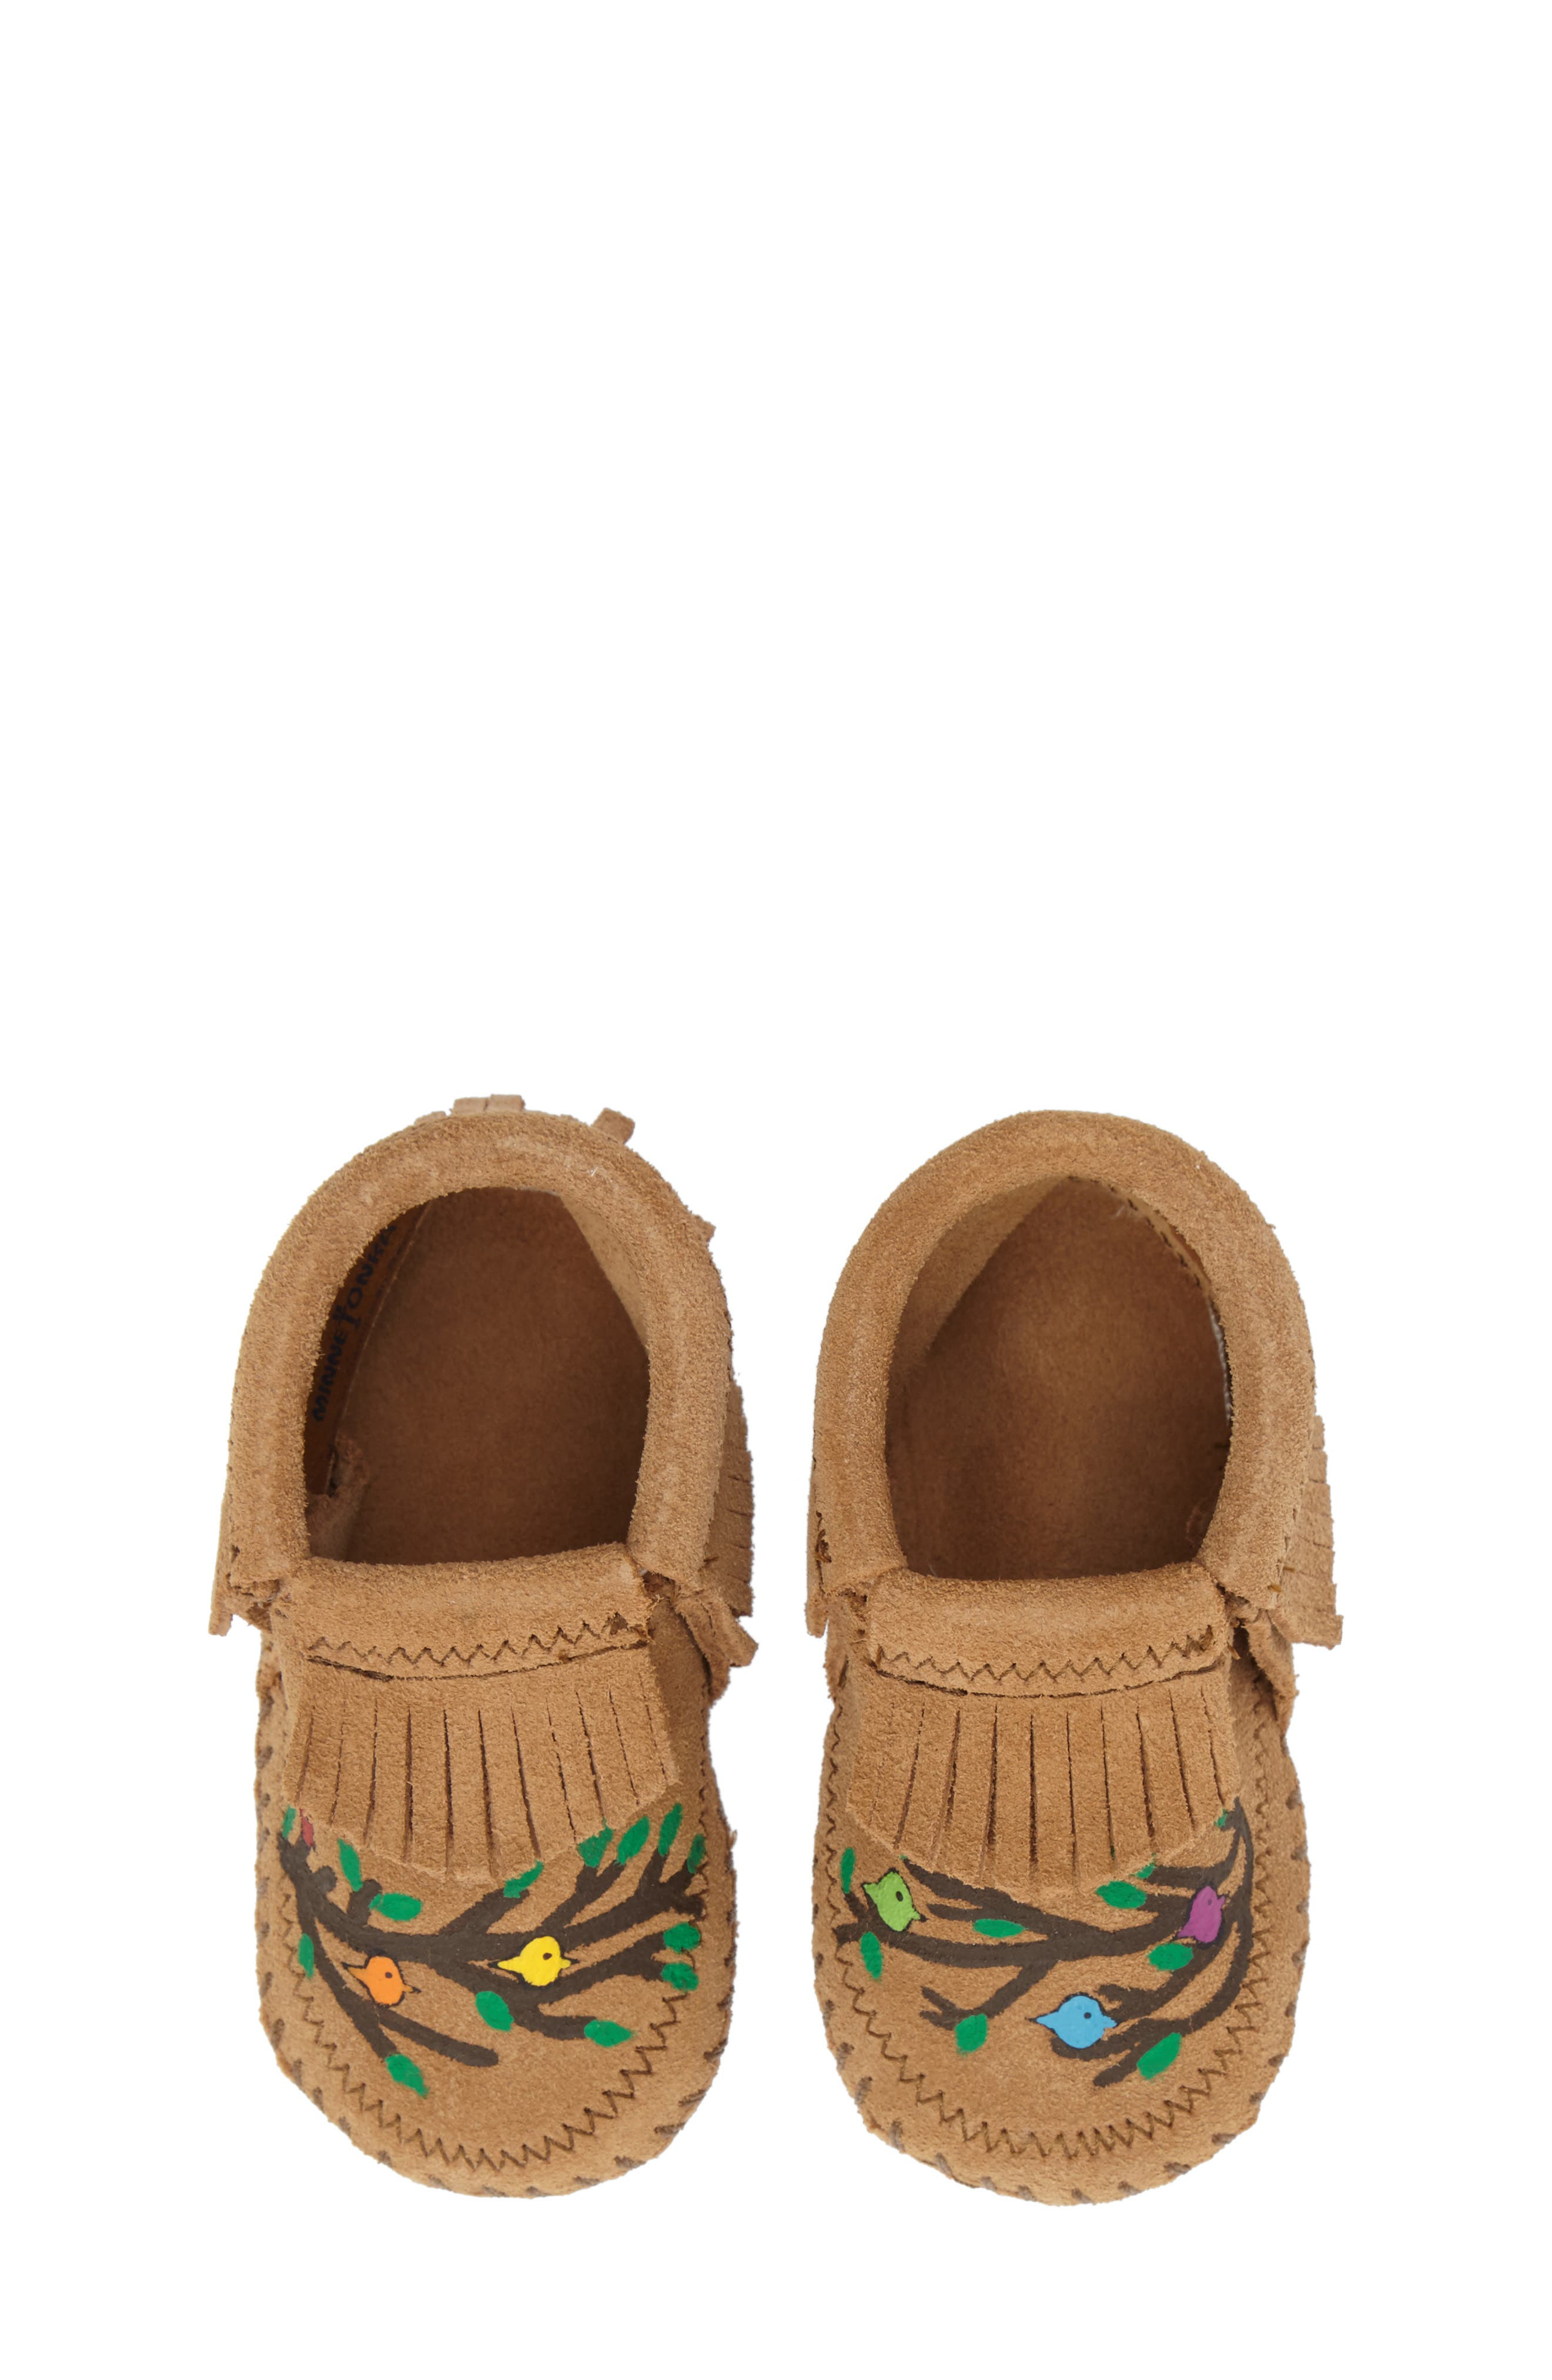 x Free Range Mama We Are Family Bootie,                         Main,                         color, 261